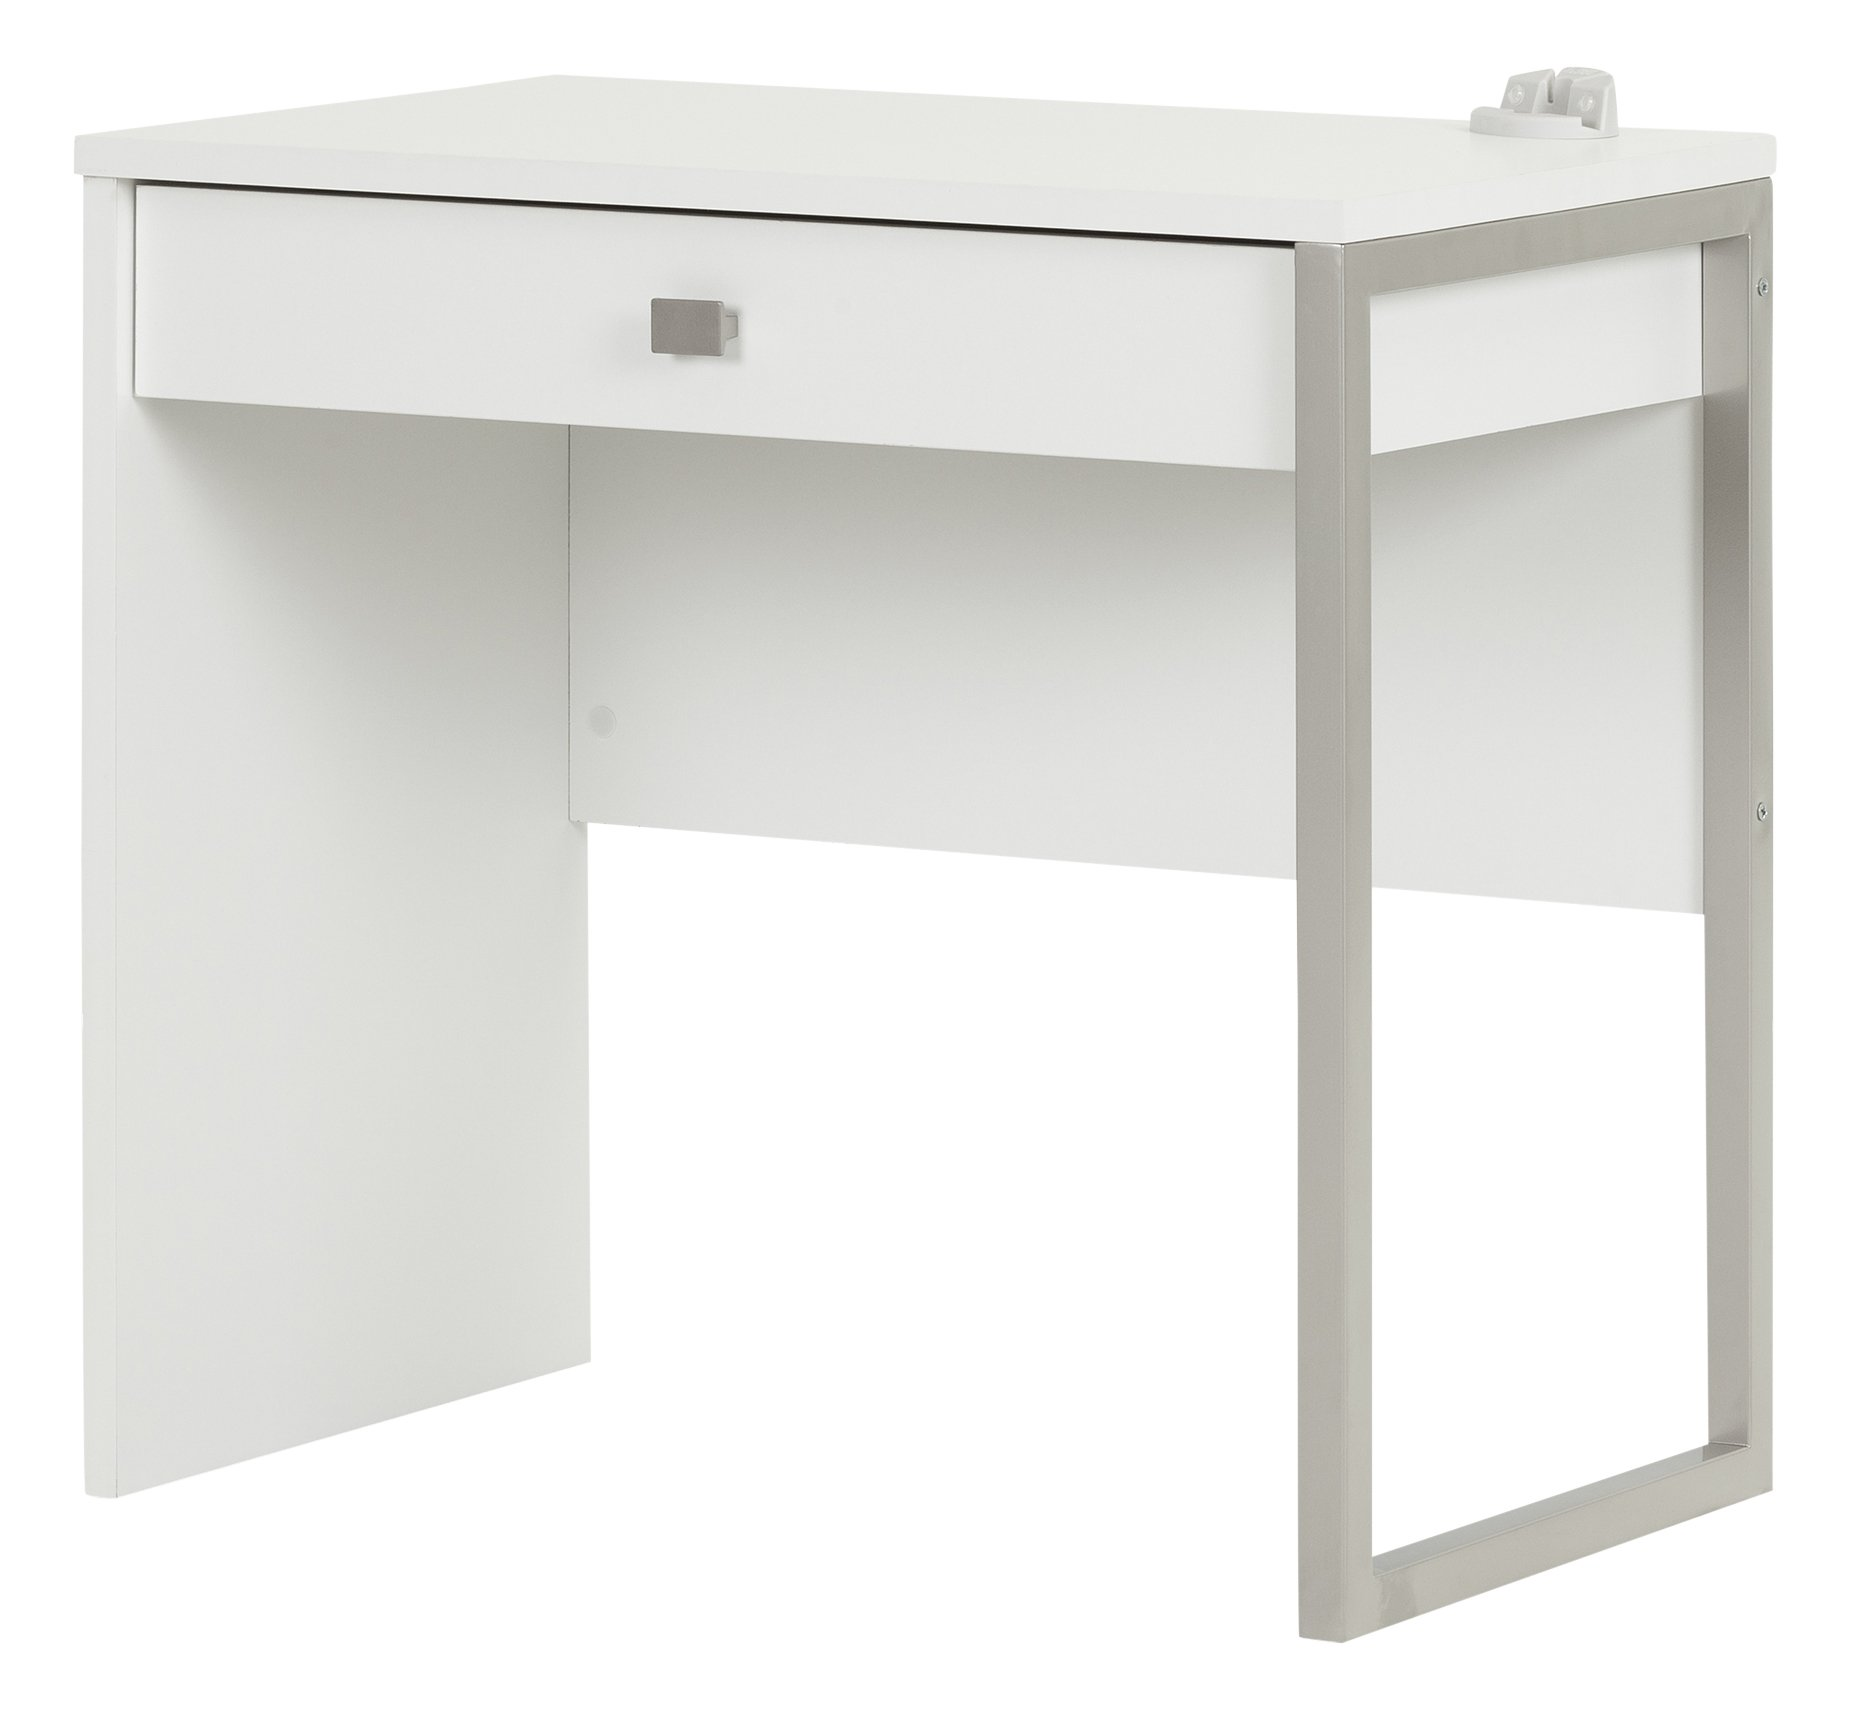 South Shore Interface Small Modern Simple Design Laptop/Study Desk with 1 Drawer, Pure White by South Shore